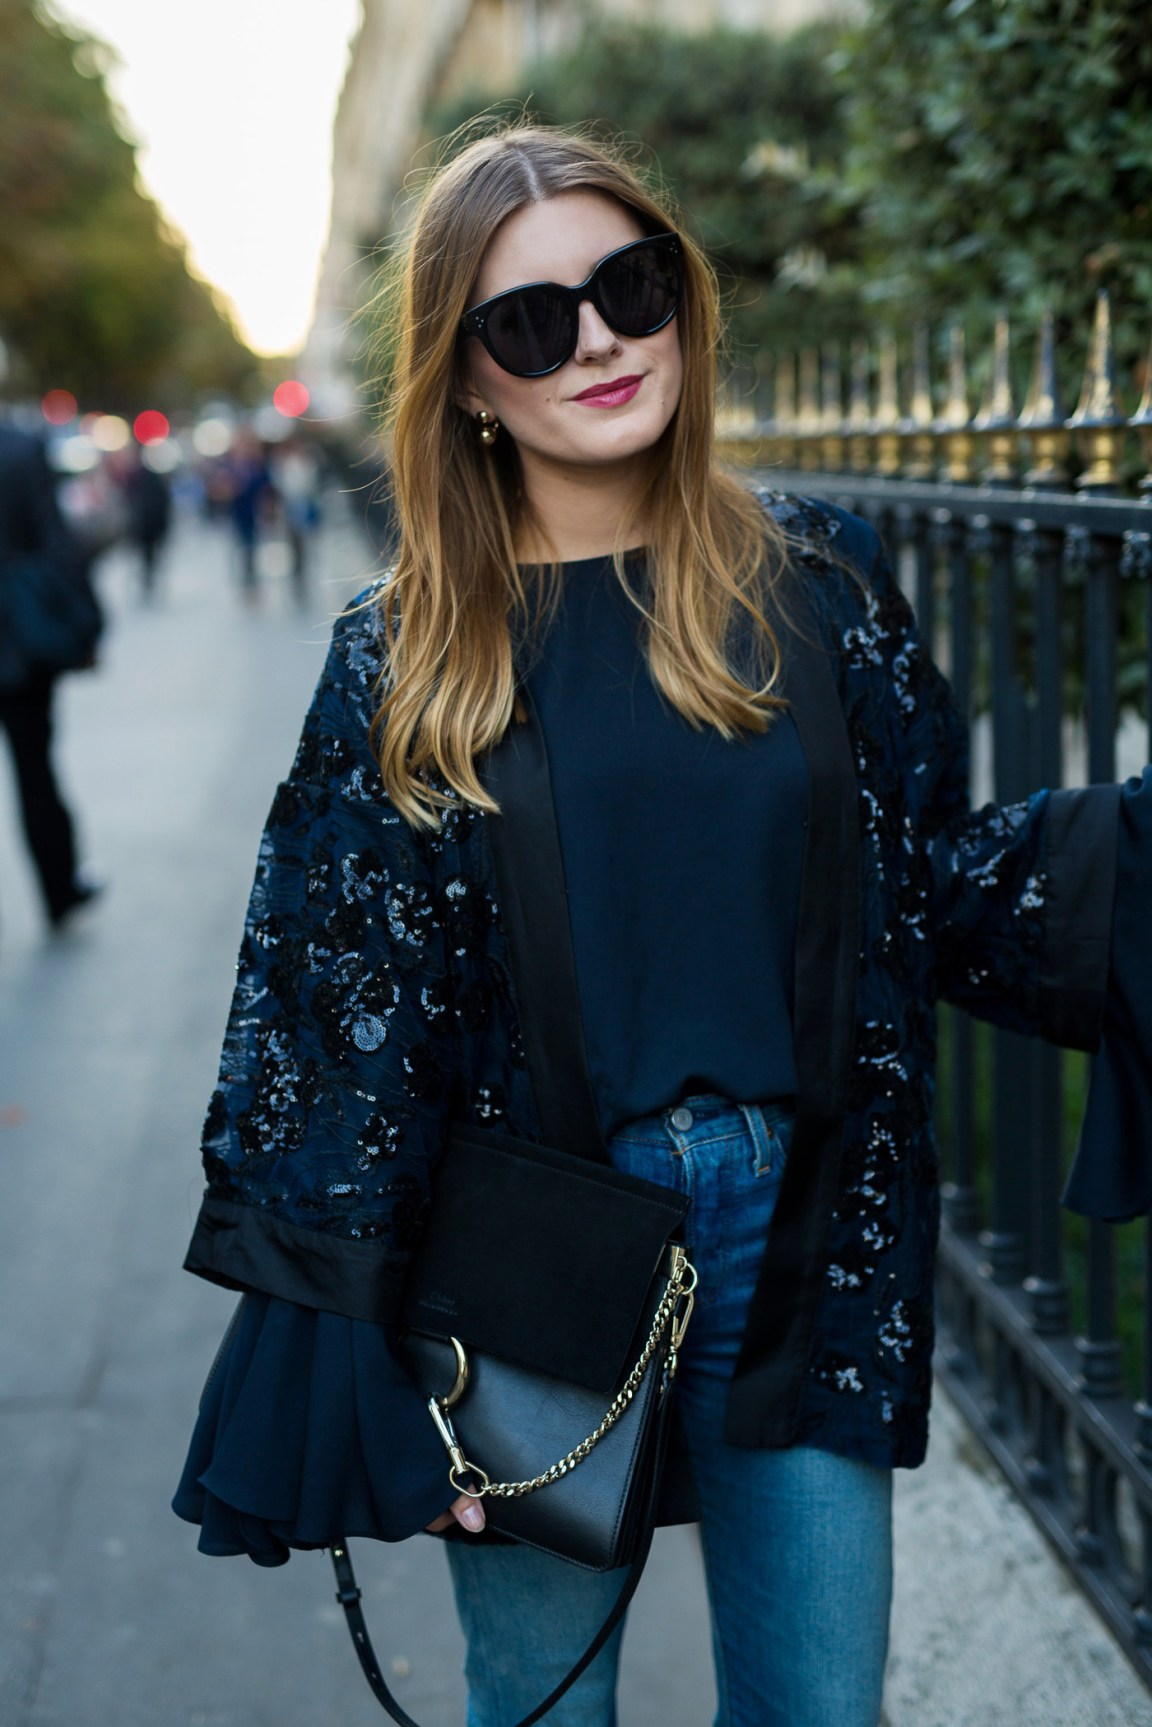 paris_fashion_week_kimono_and_bell_sleeves_6